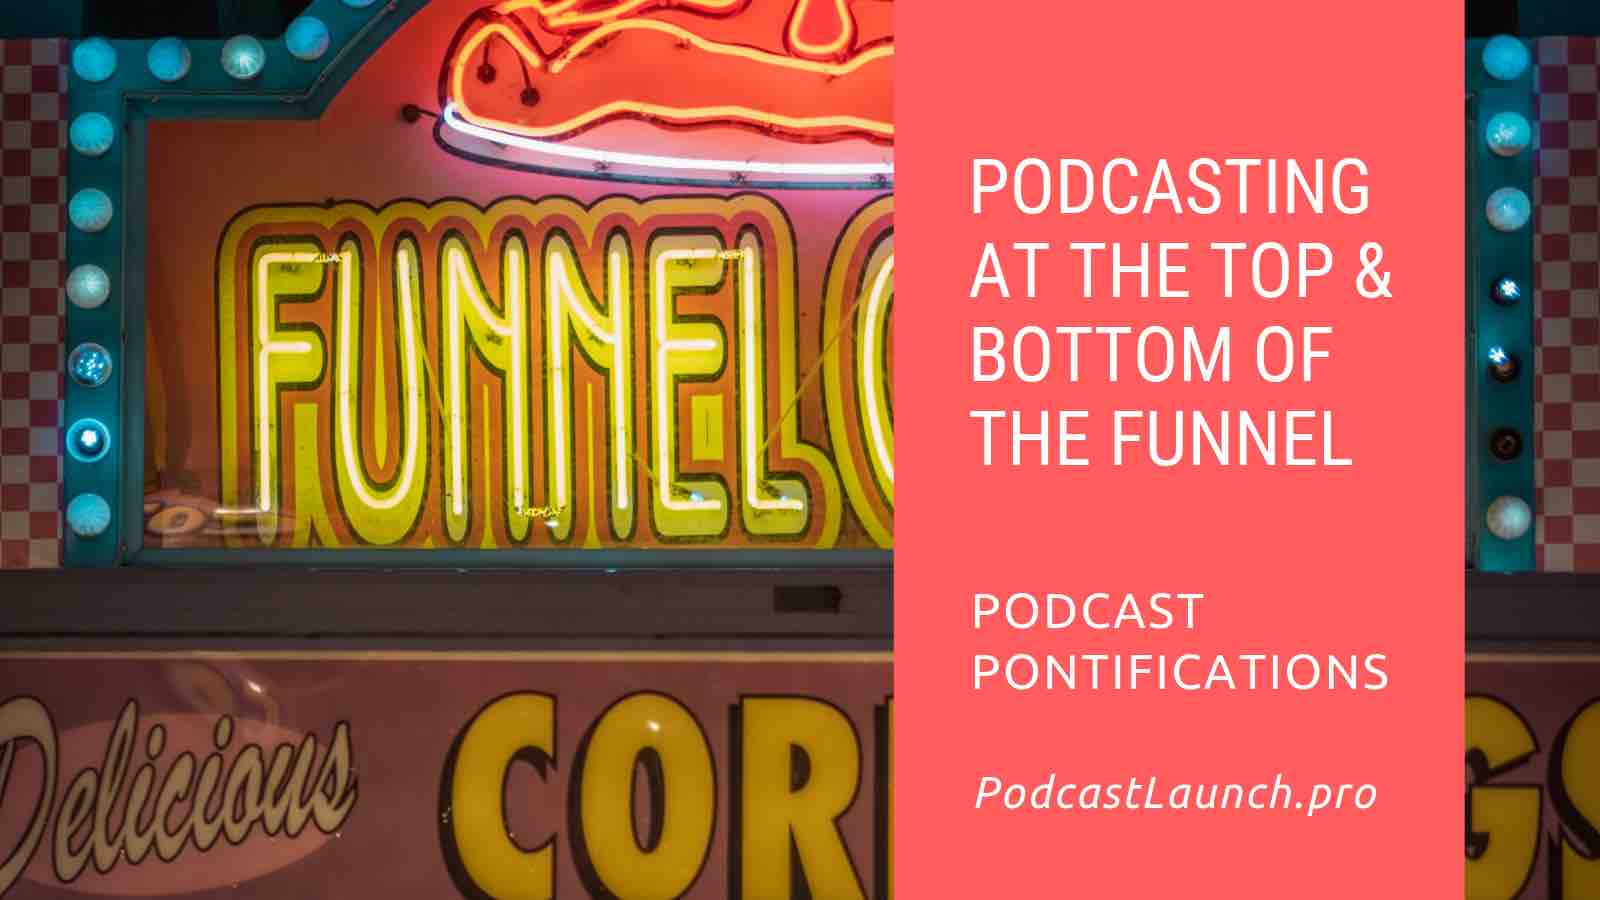 Podcasting At The Top, Middle, & Bottom Of The Funnel